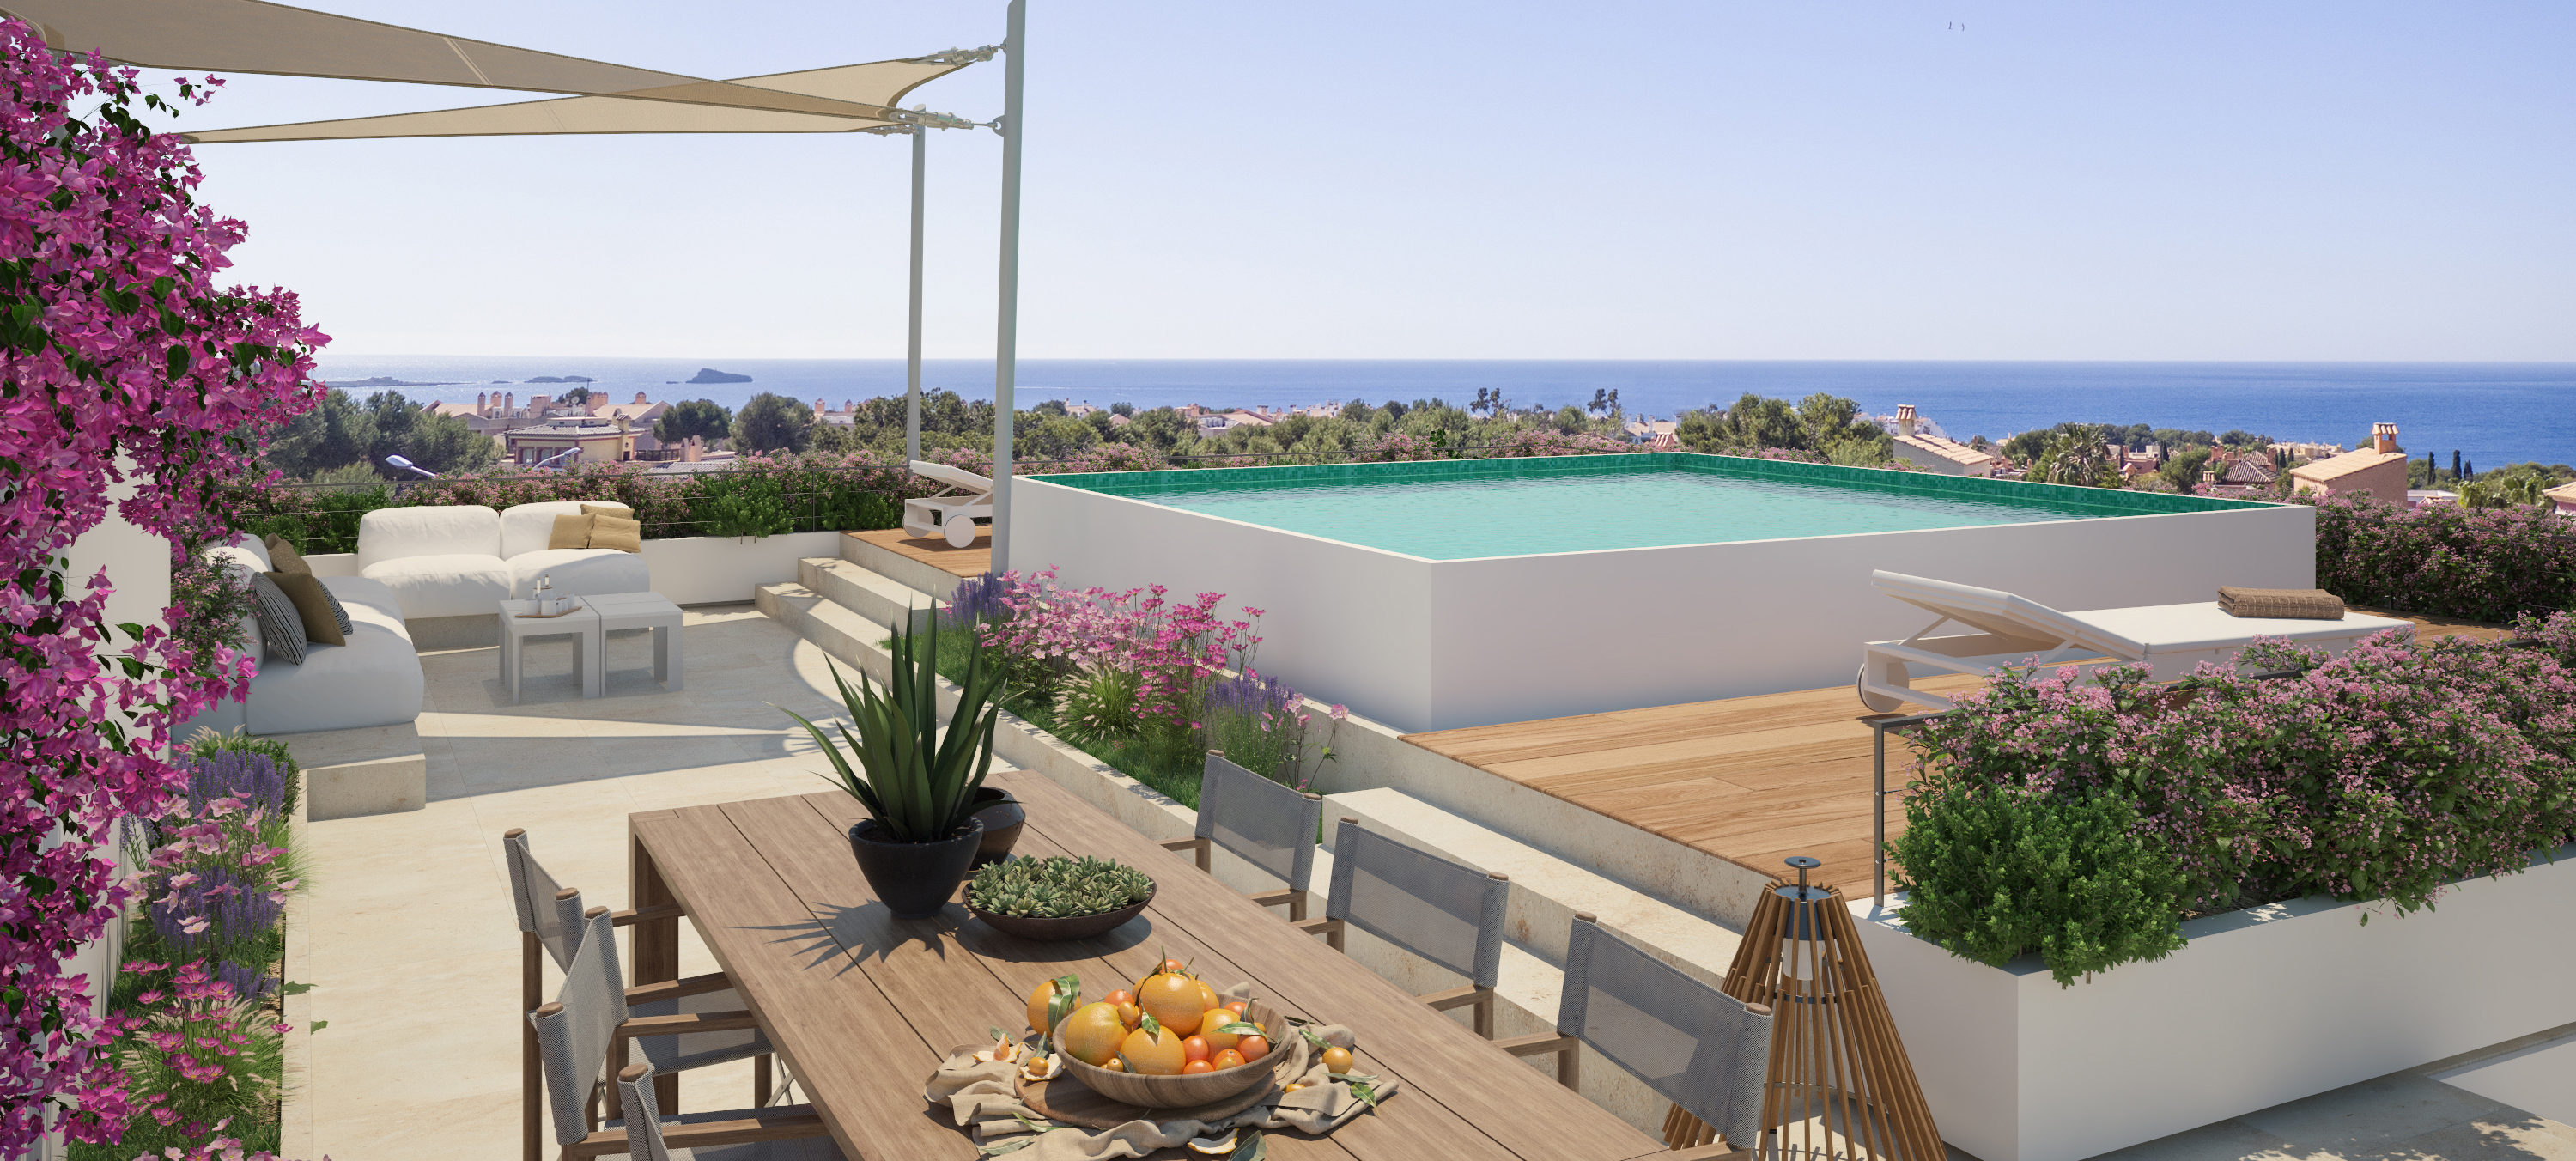 Santa Ponsa - Roof terrace with private pool at GREEN ELEMENTS